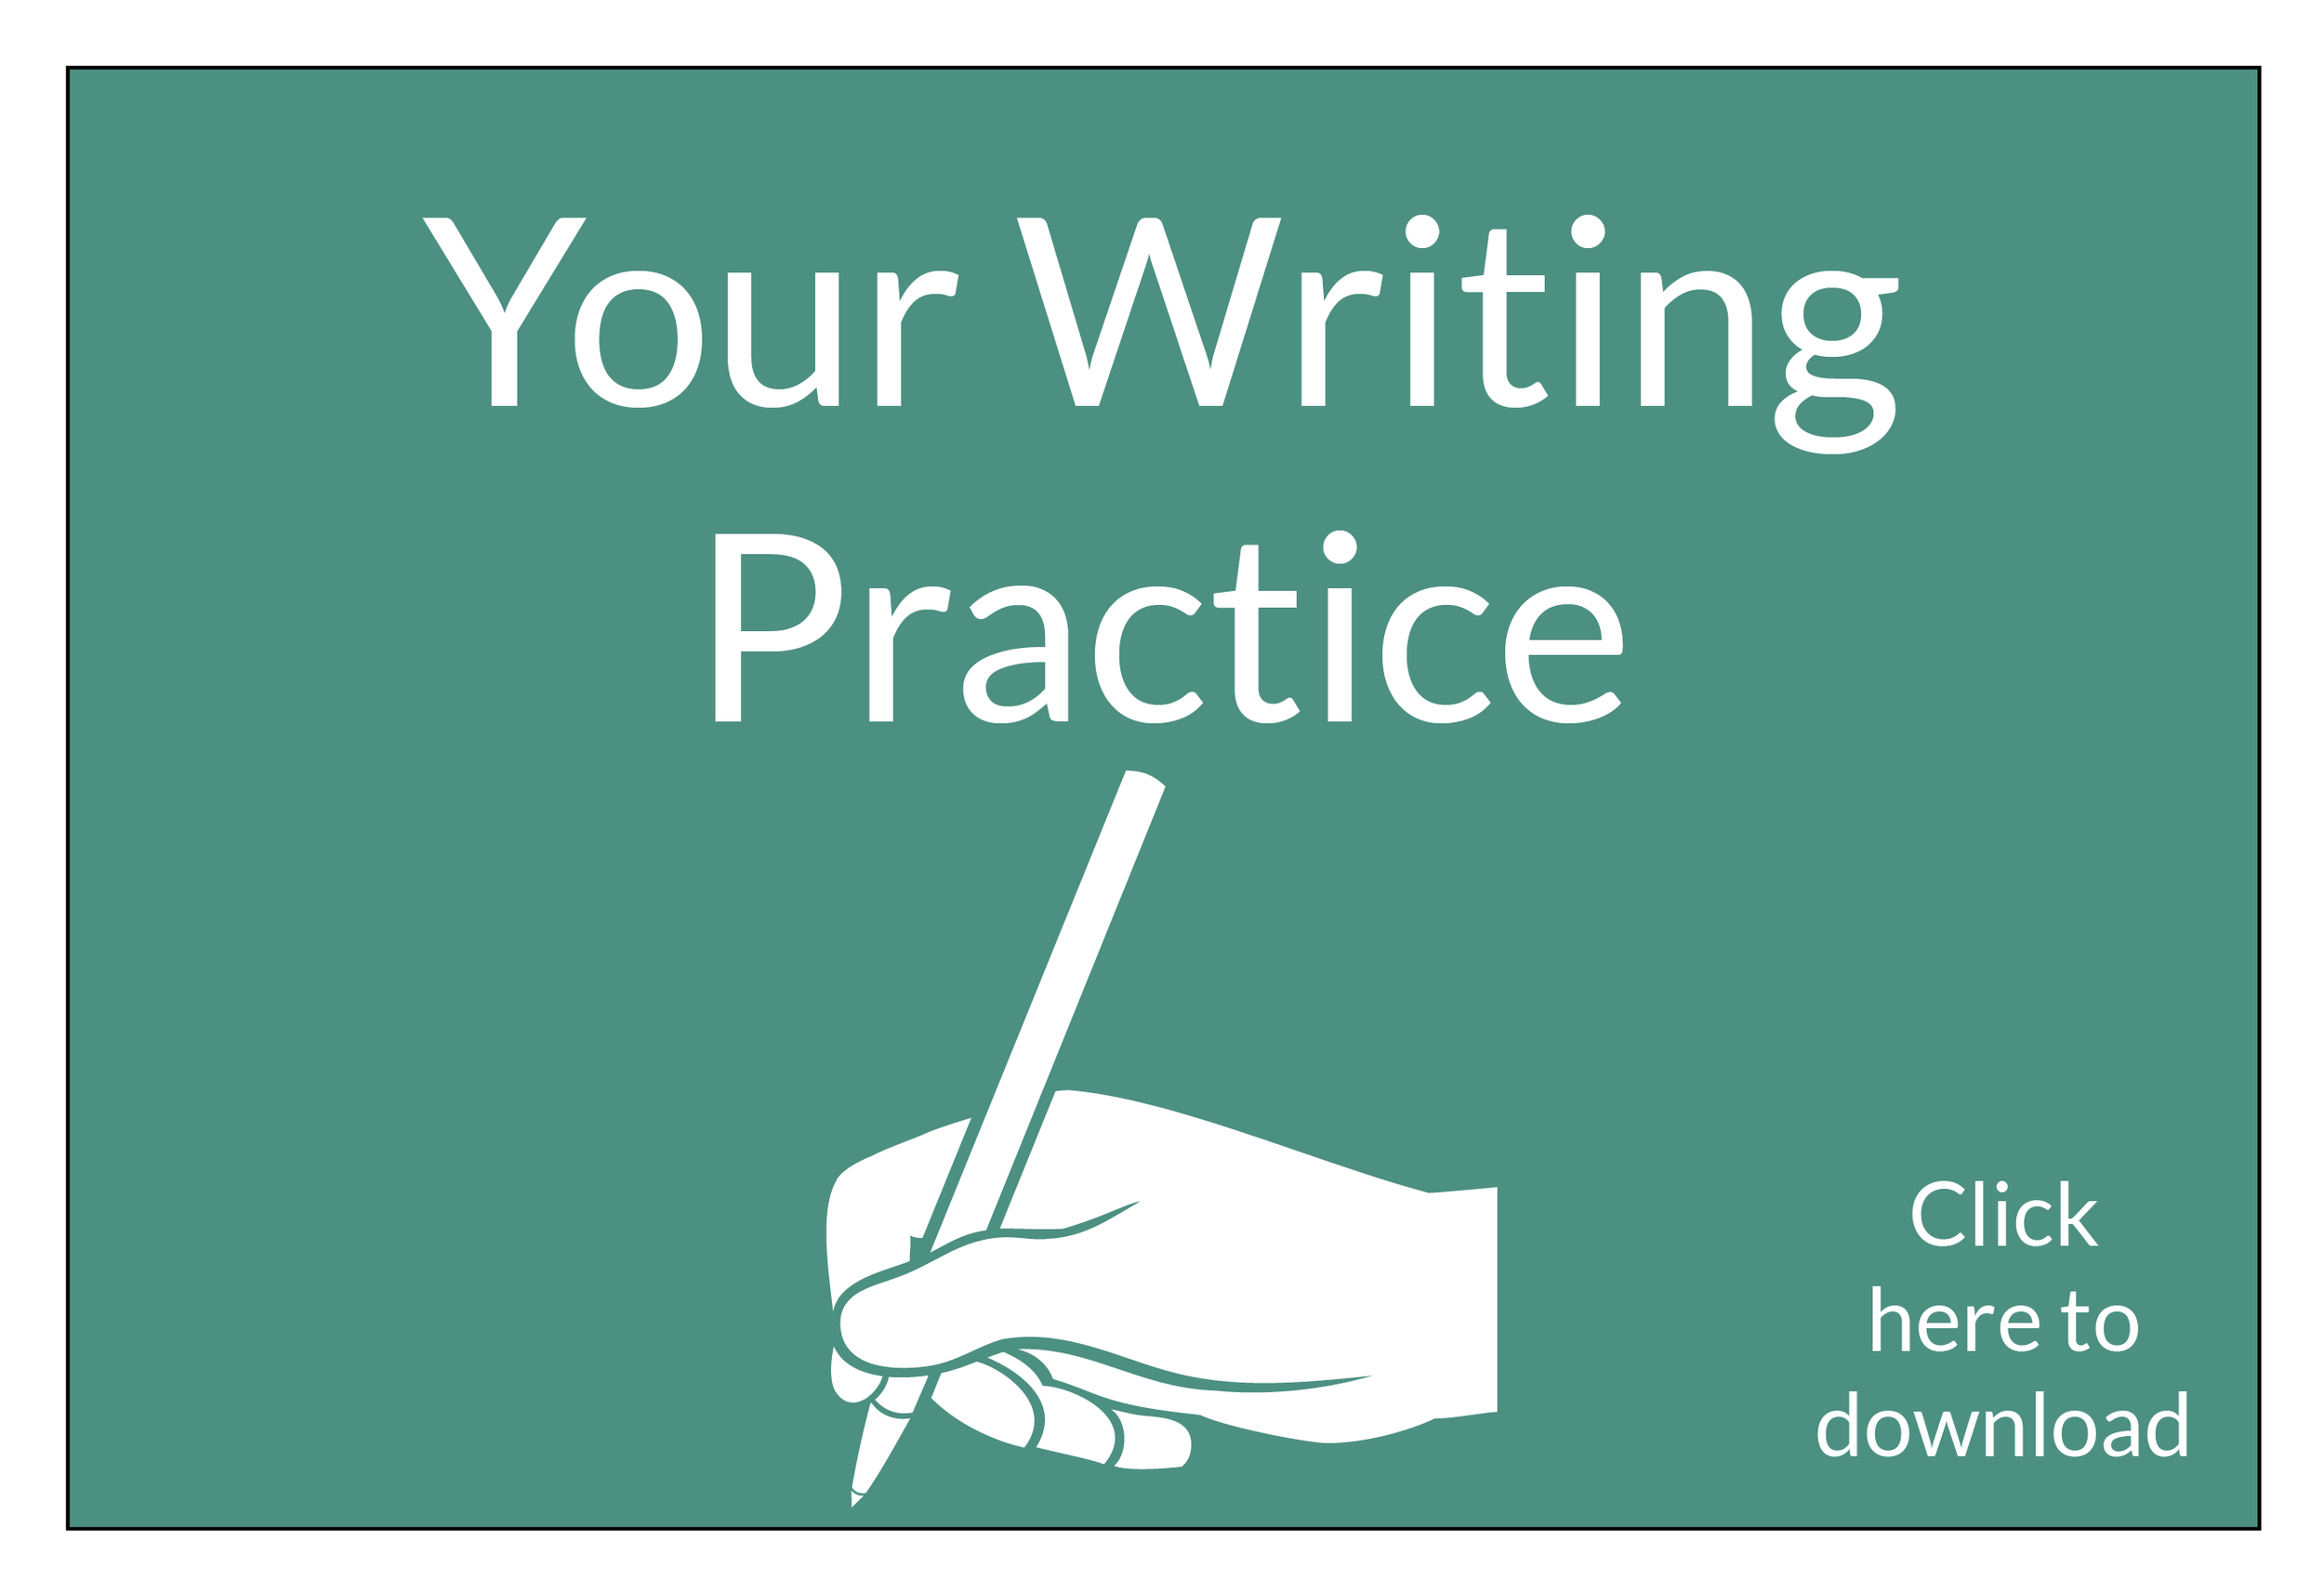 Your Writing Practice